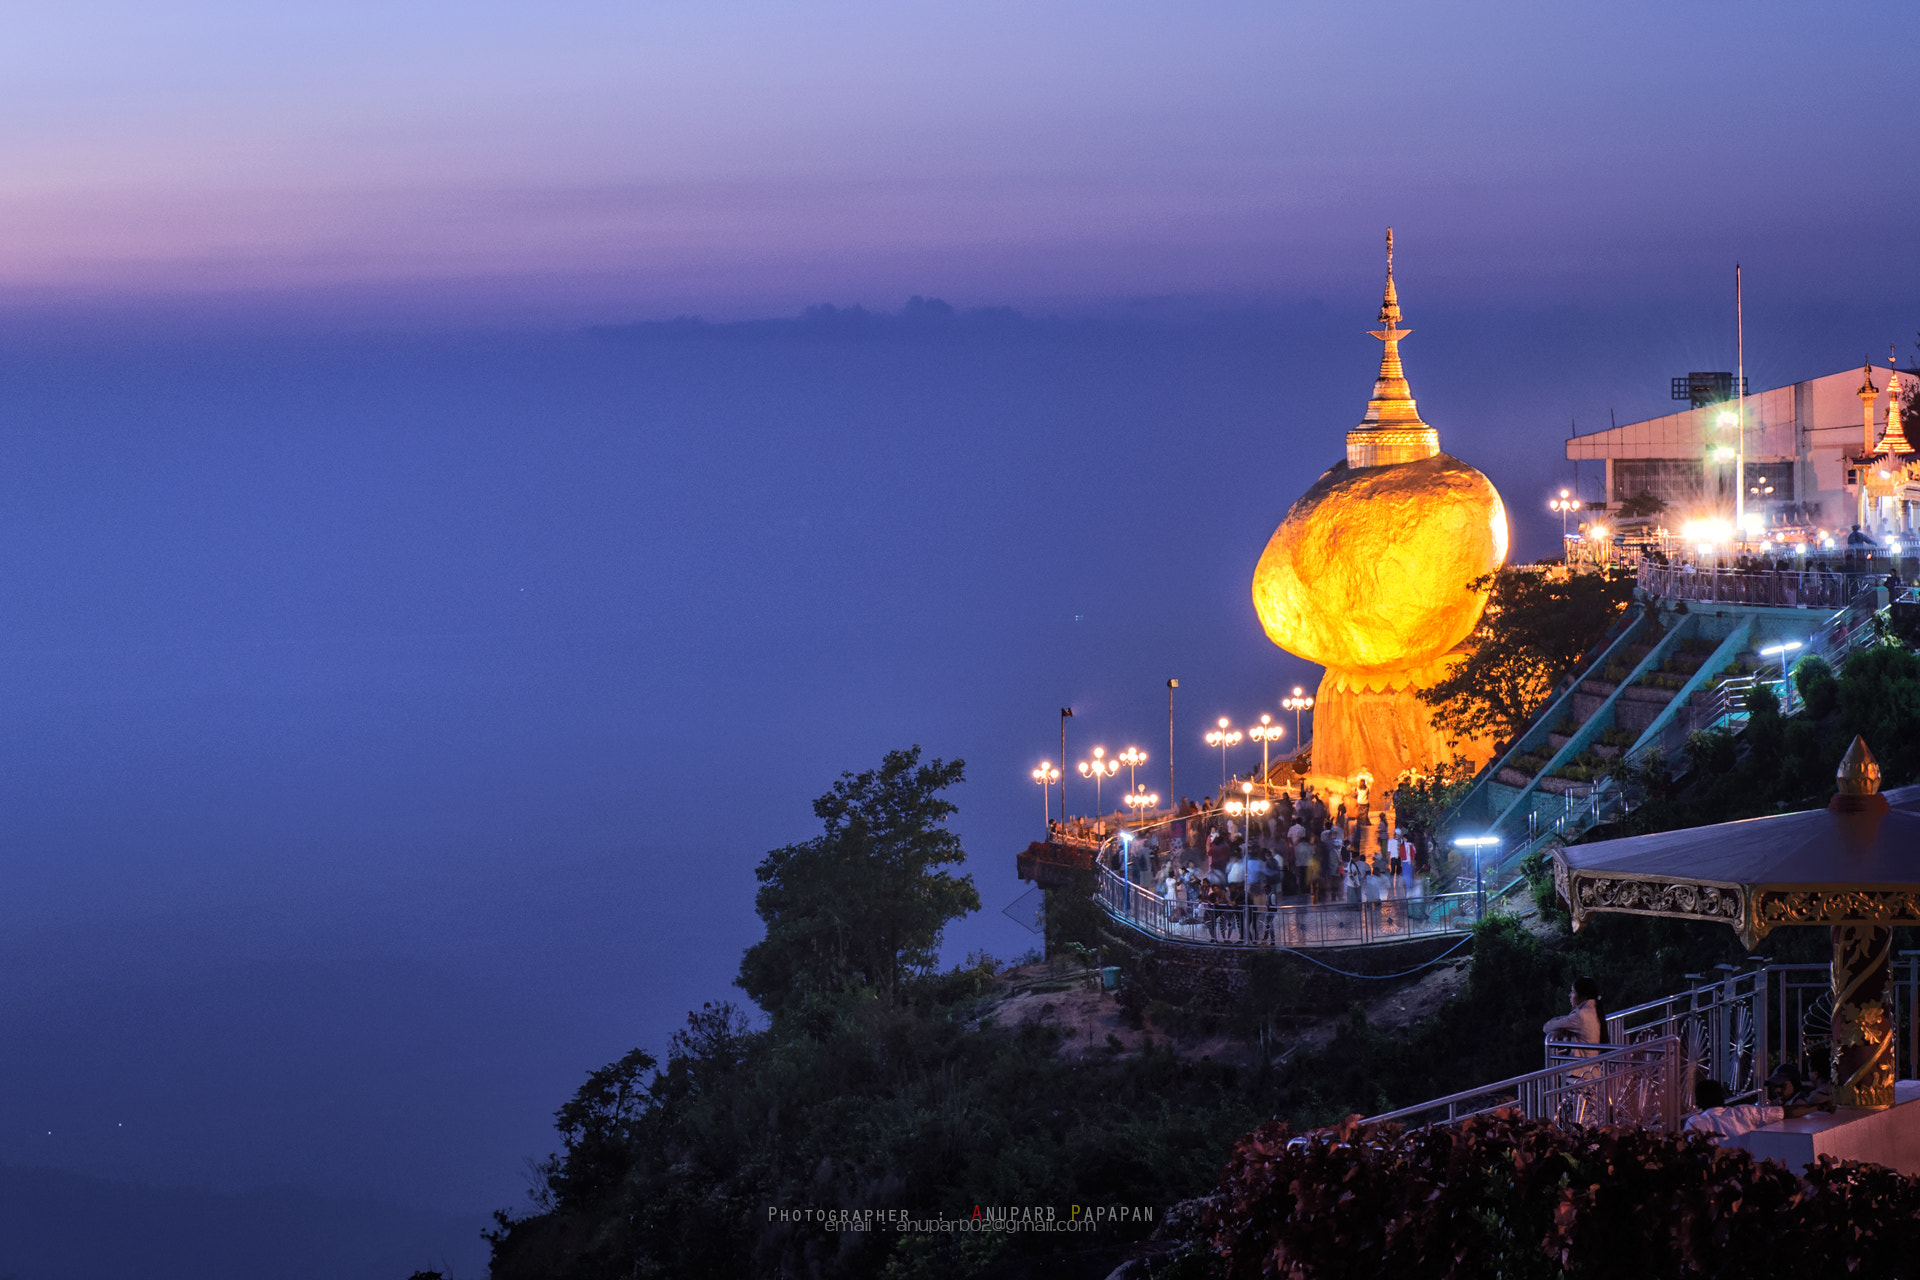 Photograph Golden Rock by Anuparb Papapan on 500px